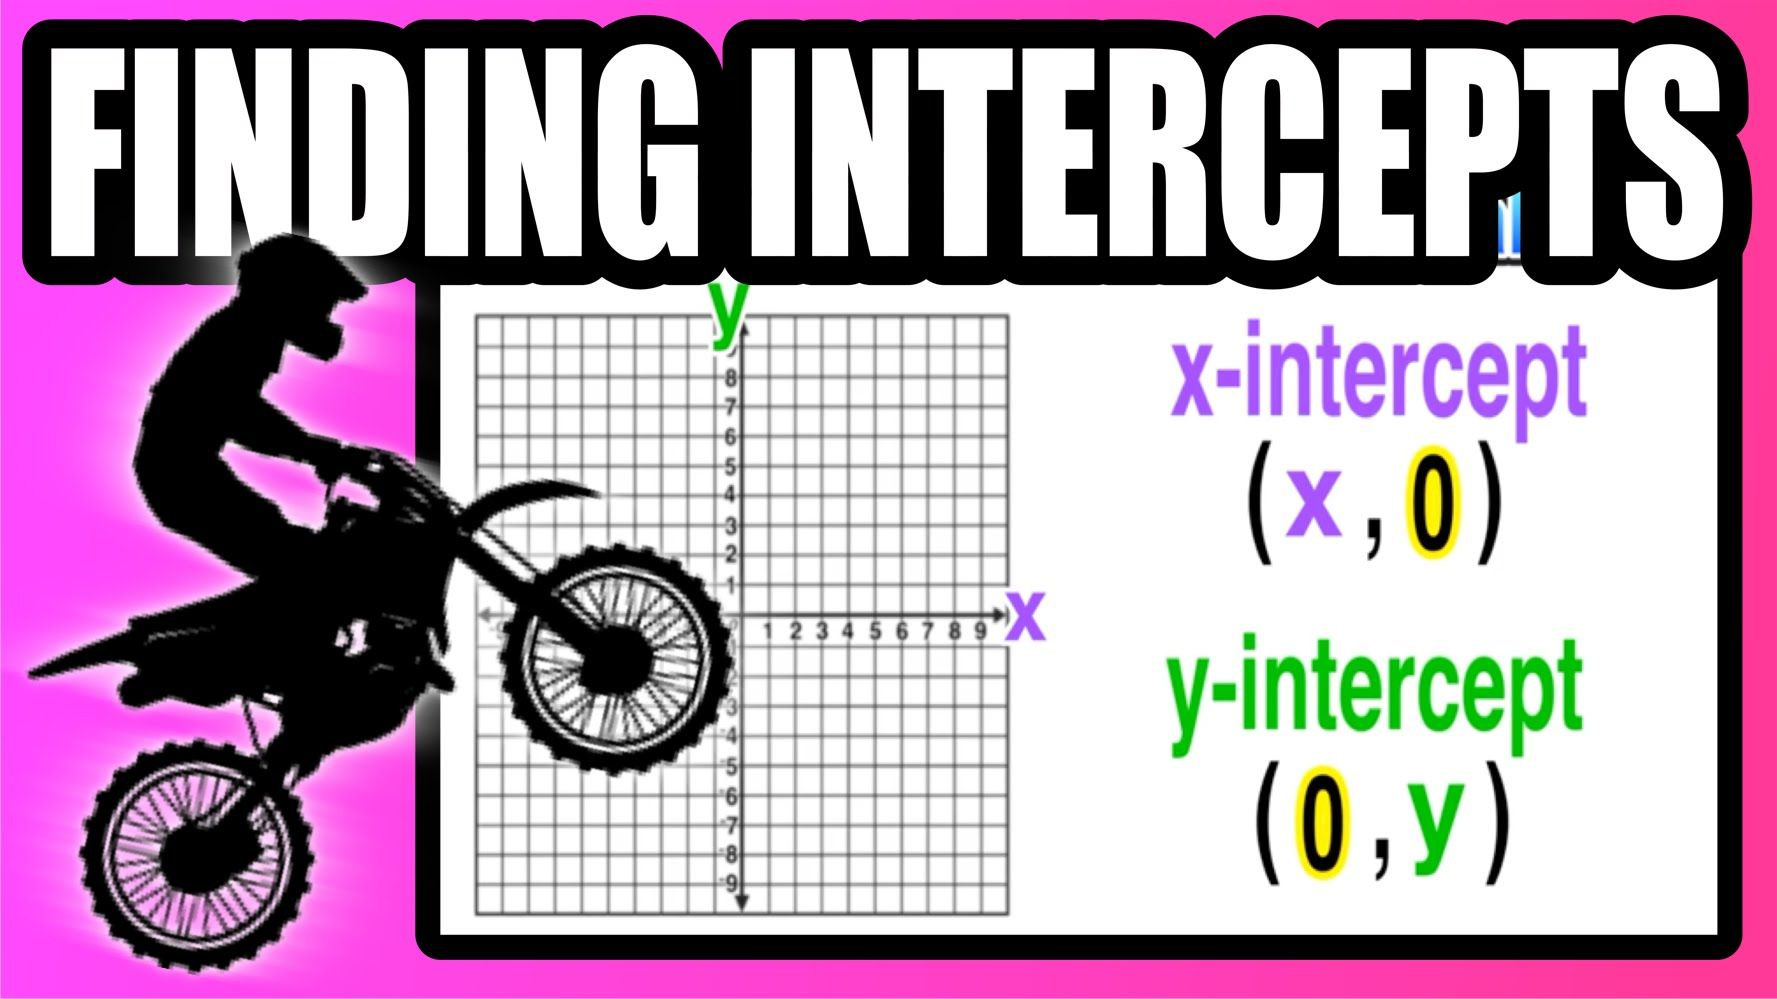 How Do I Find the X and YIntercept of a Function